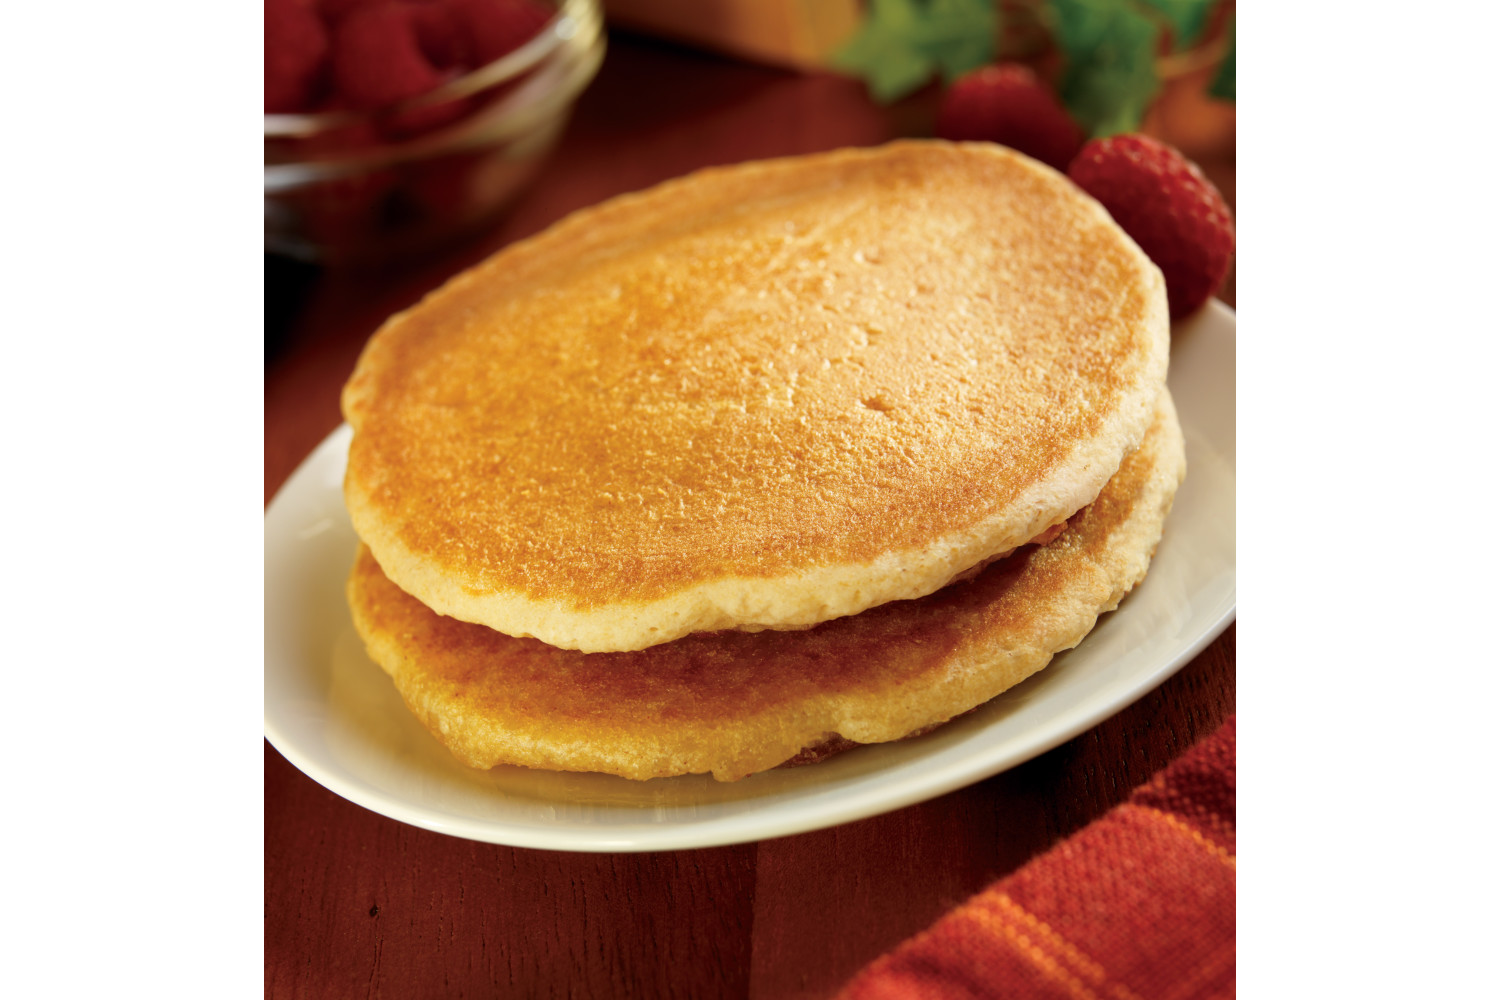 Pancakes with Cinnamon, Whole Grain, 2 pieces, 3 oz